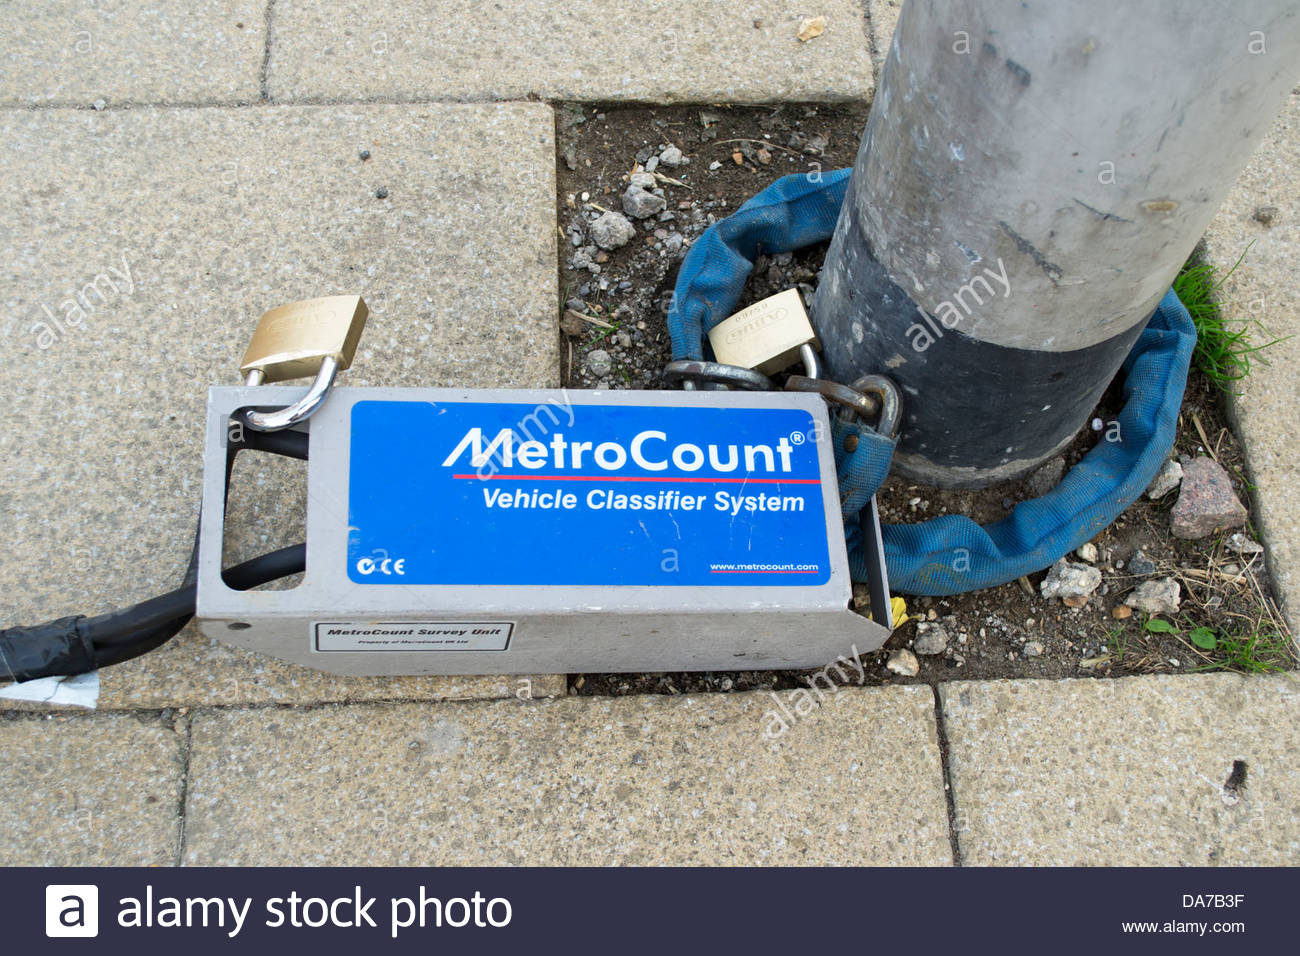 Metrocount portable vehicle monitoring system installed in Godmanchester. - Stock Image